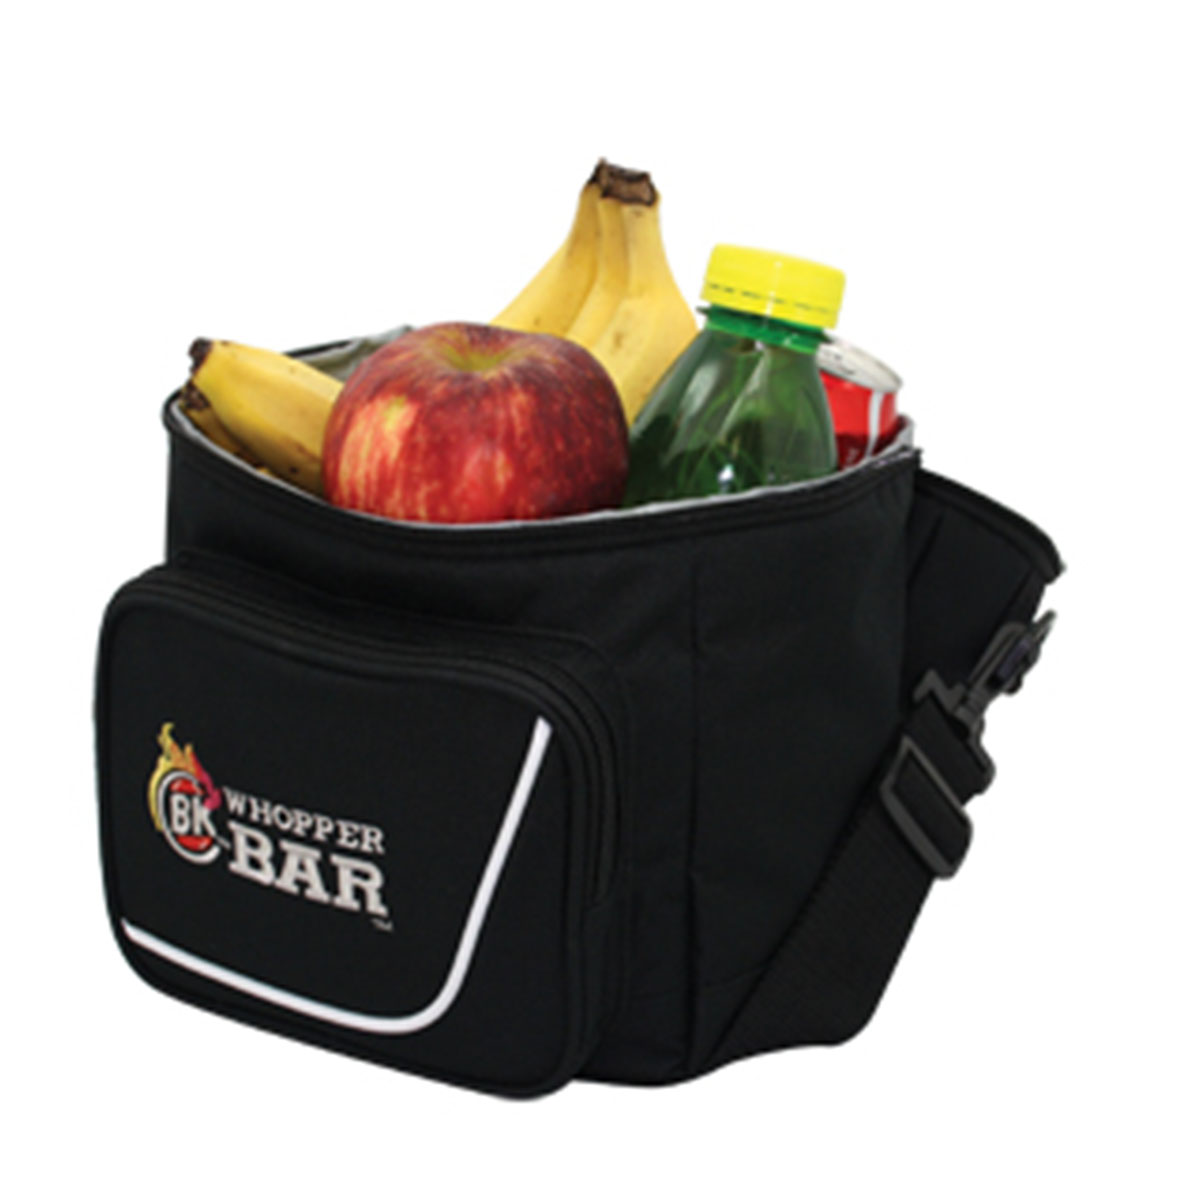 Urban cooler bag